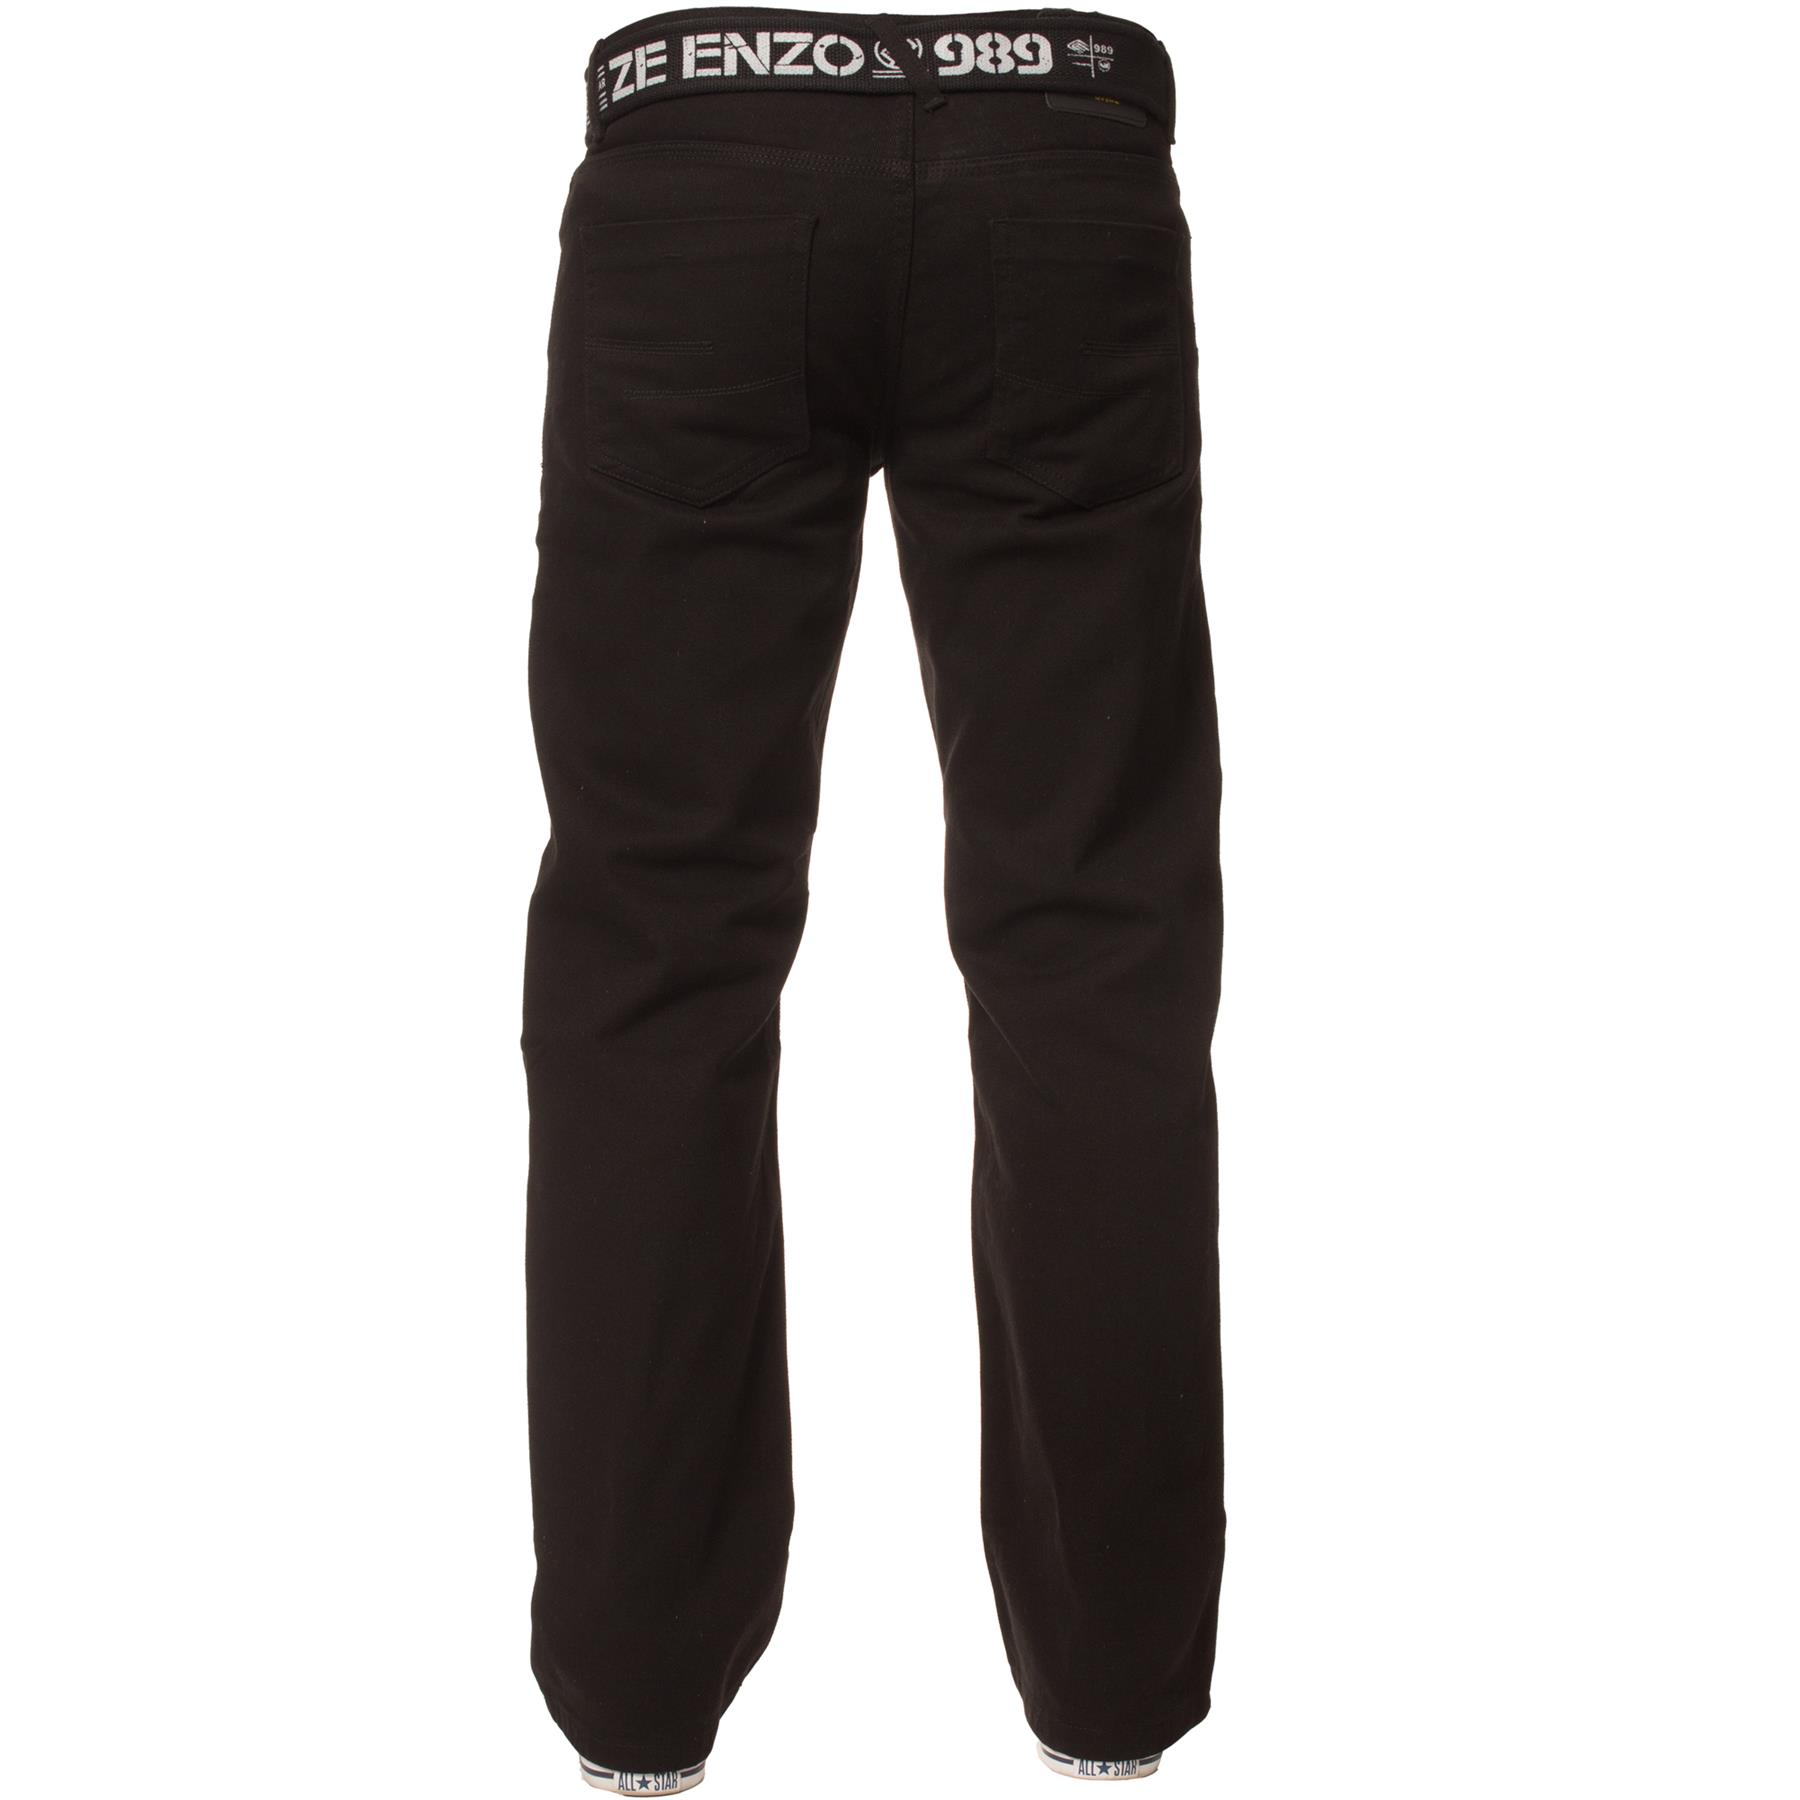 Enzo-Mens-Jeans-Big-Tall-Leg-King-Size-Denim-Pants-Chino-Trousers-Waist-44-034-60-034 miniature 5